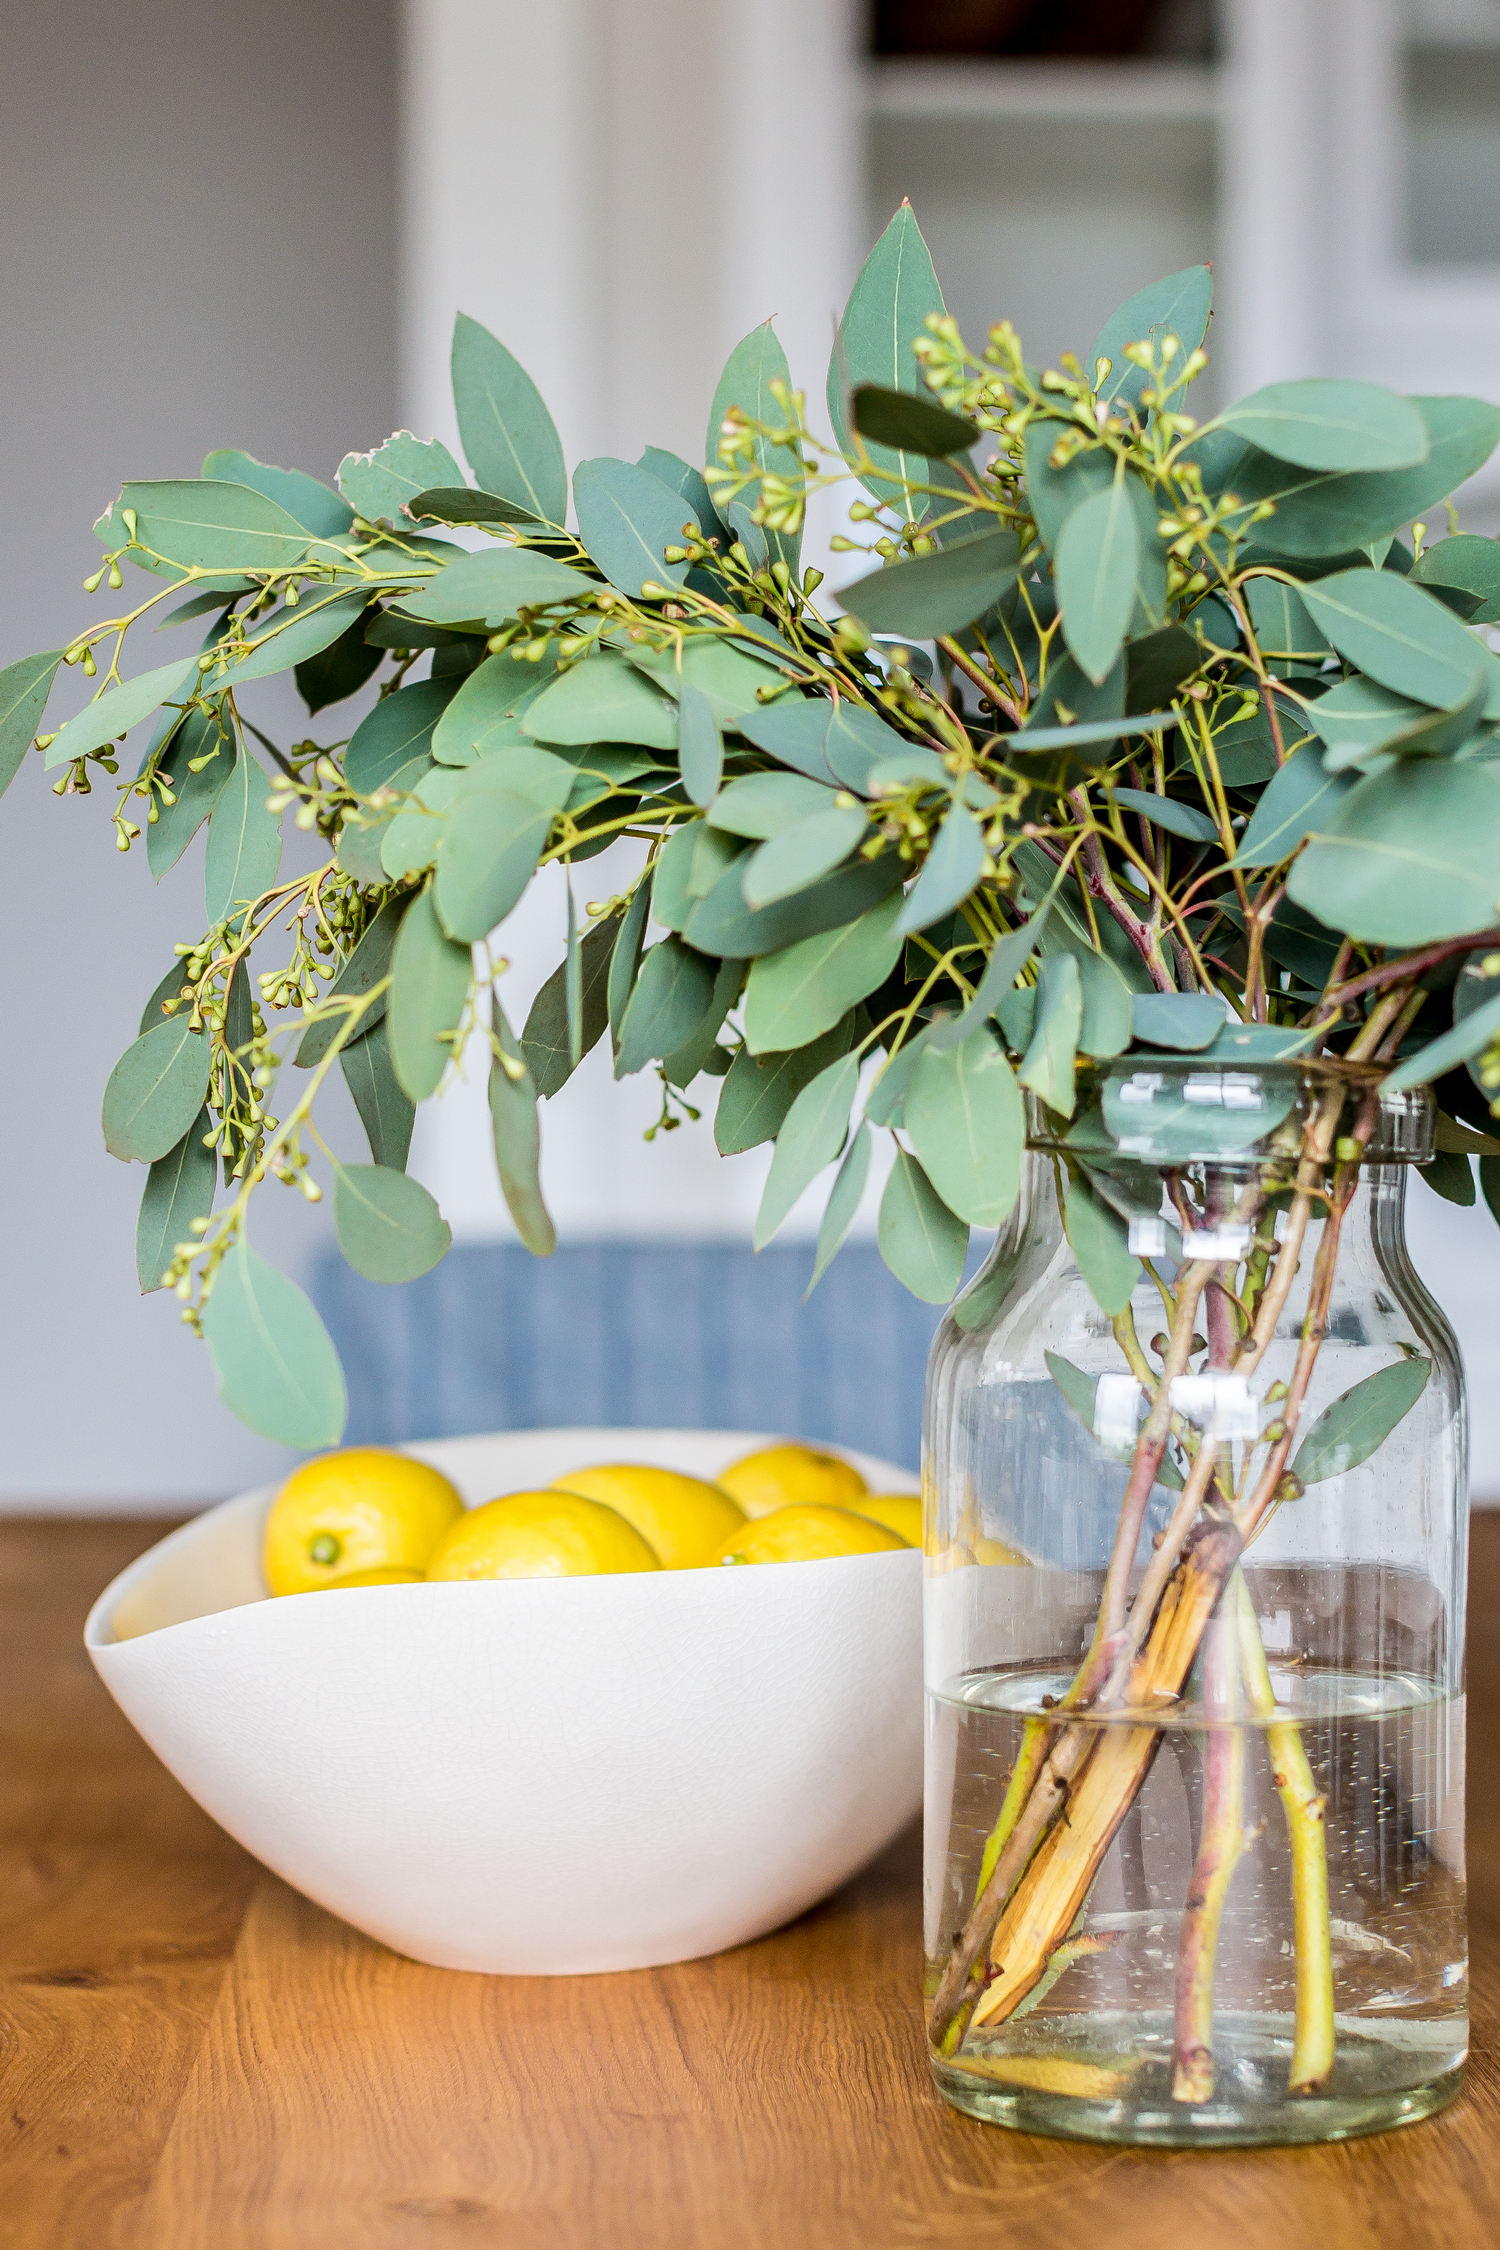 bowl of lemons and plant on kitchen table